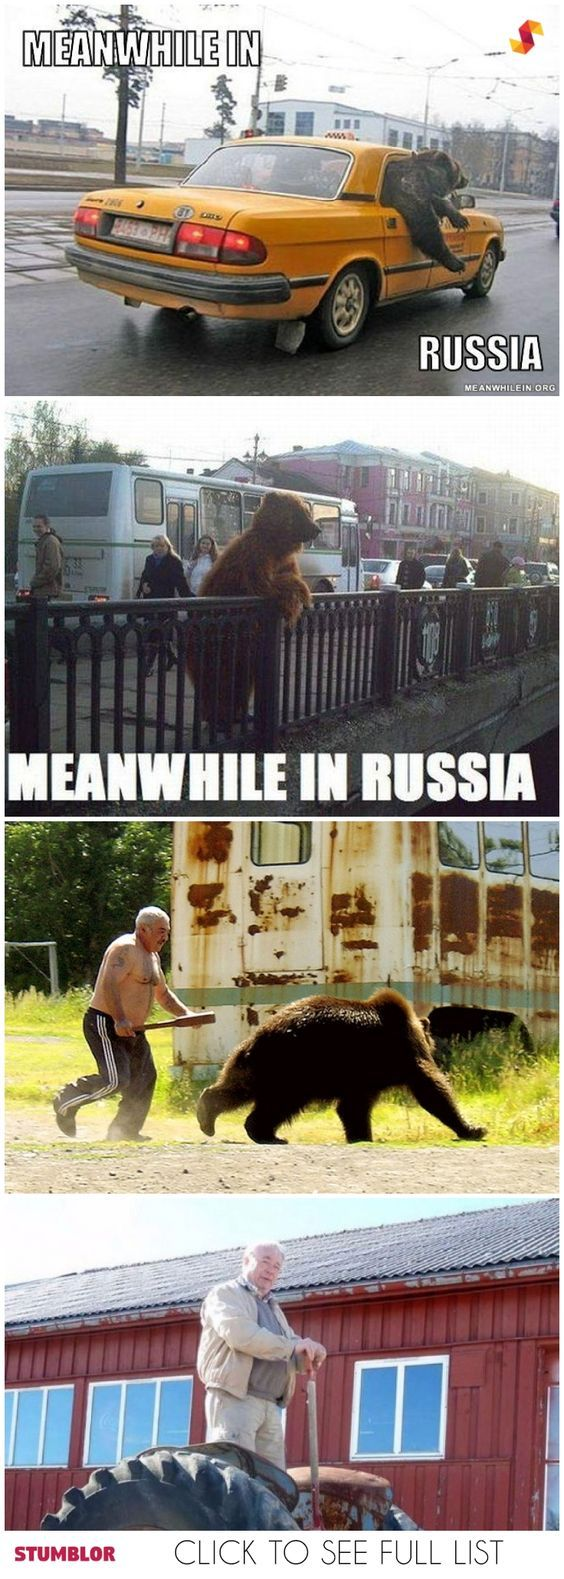 russiA BE LIKe - meme